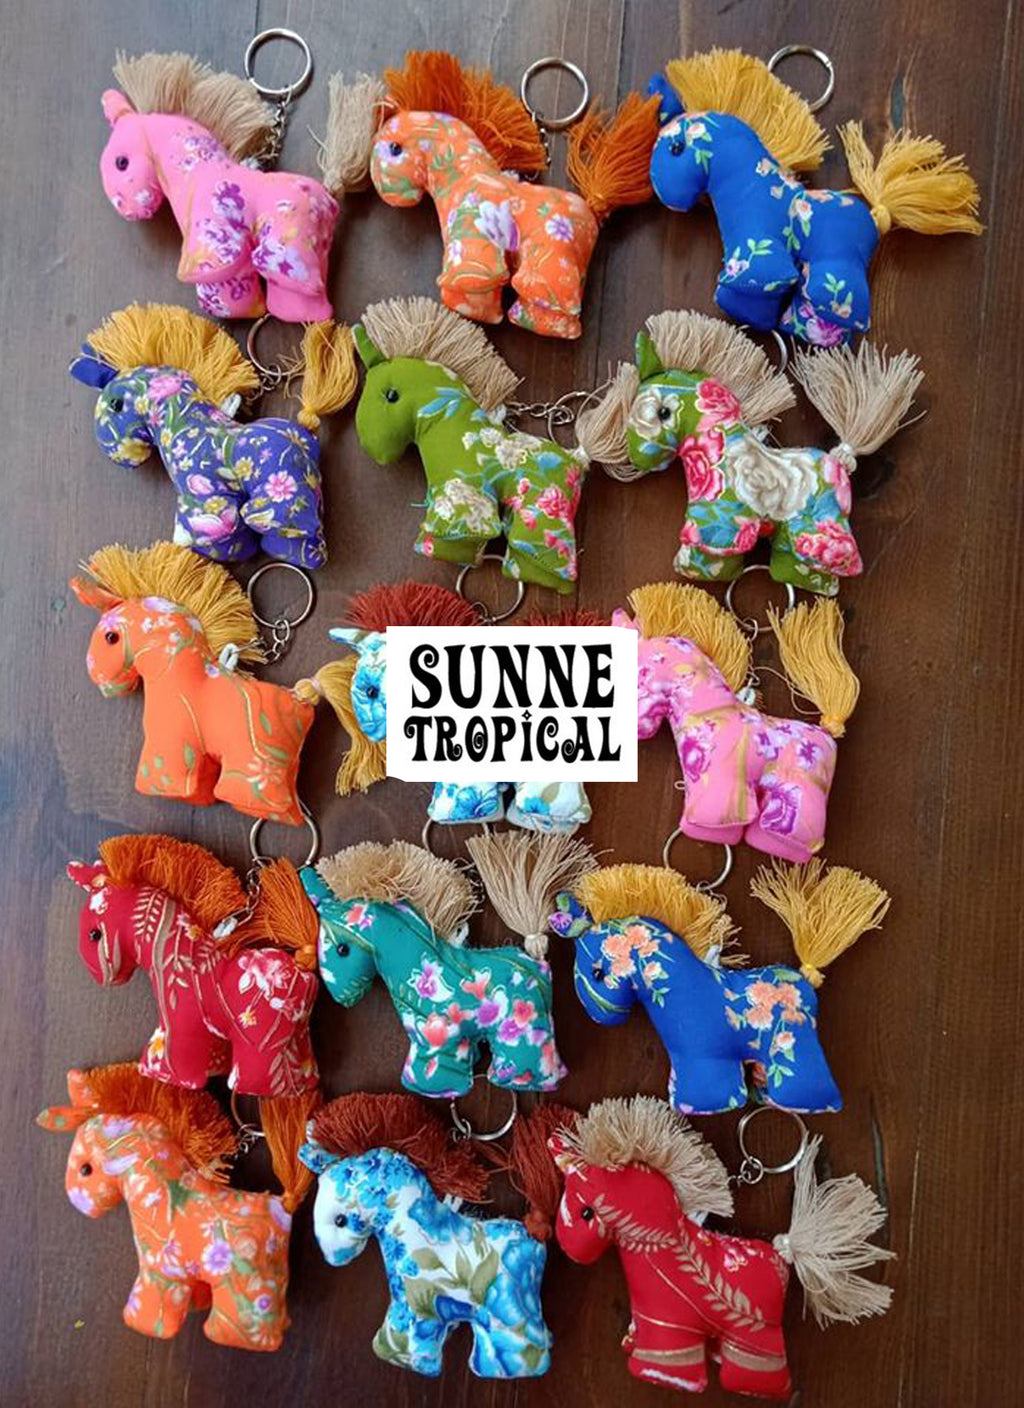 UPCYCLE Handmade Fabric Keychain ANIMAL Charm Key Rings Holder Bag Accessories Handmade Gift! so CUTE RANDOM COLOR (Pack of 4) - DONKEY & HORSE